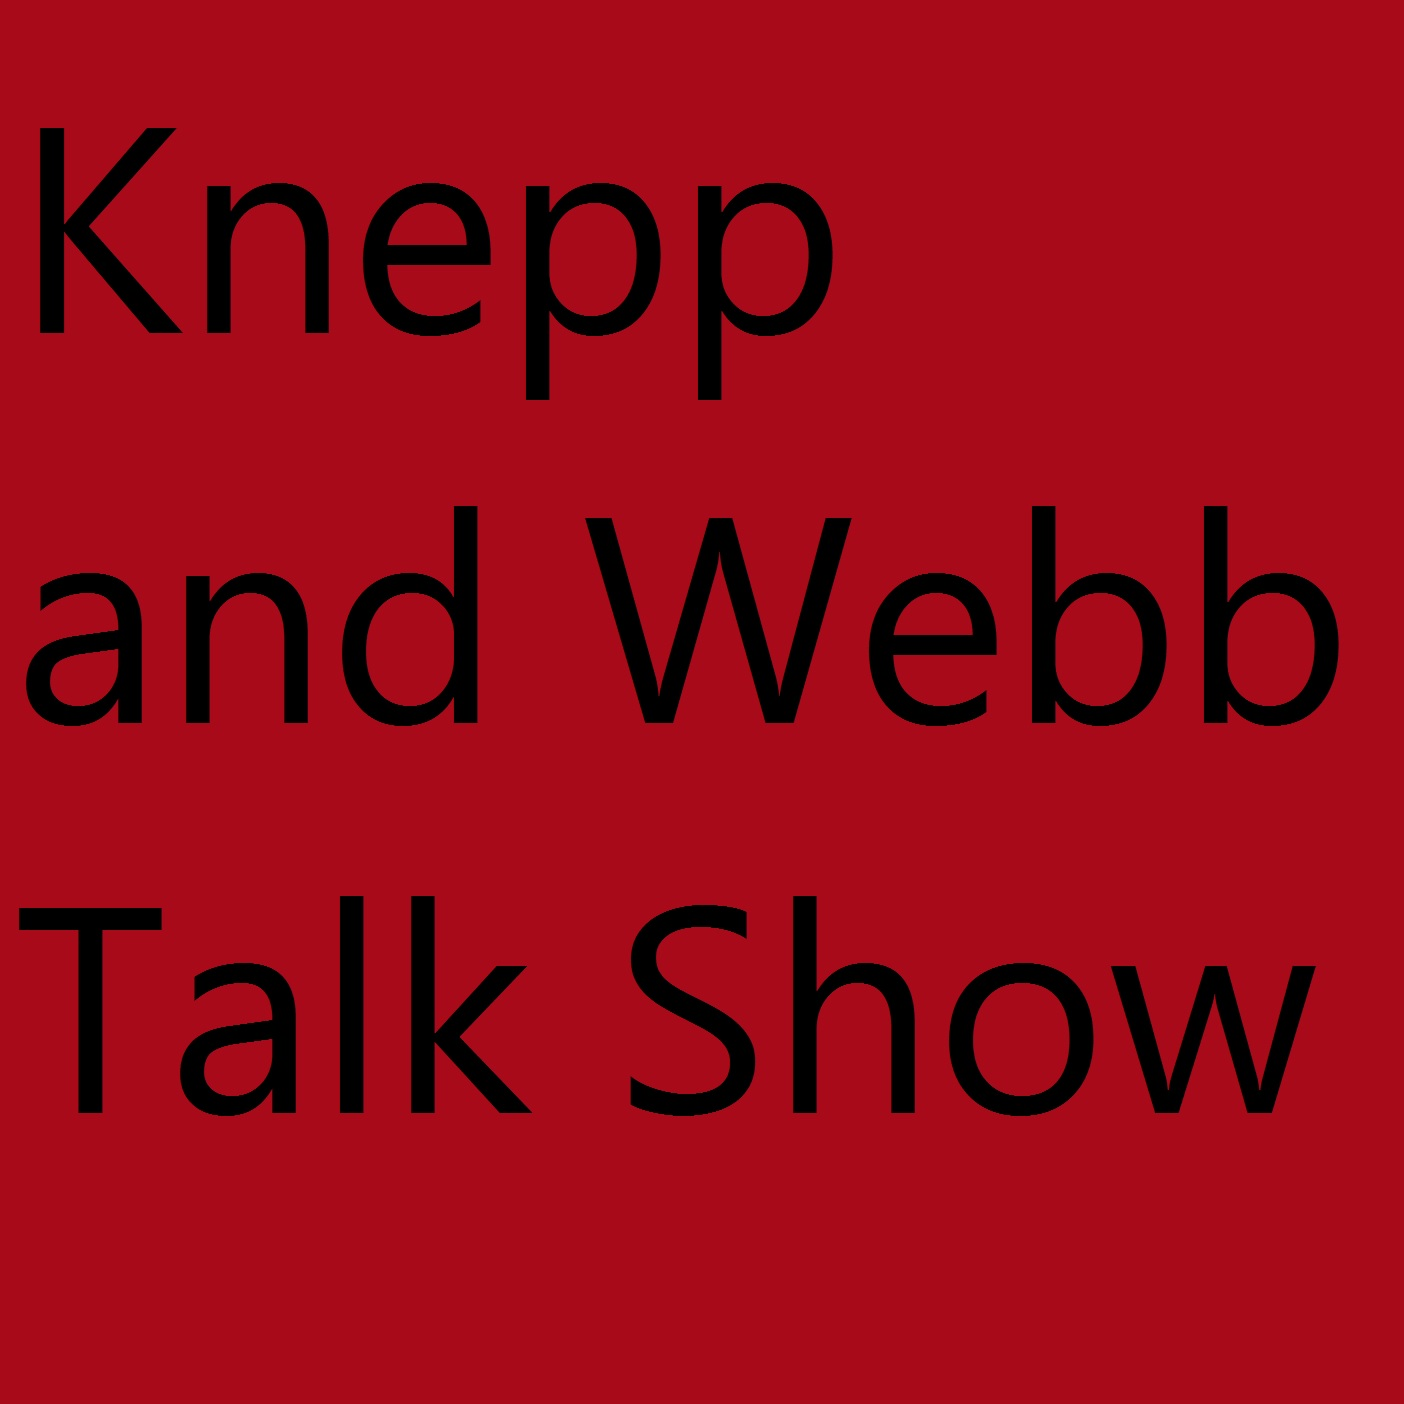 the Knepp and Webb Talk Show